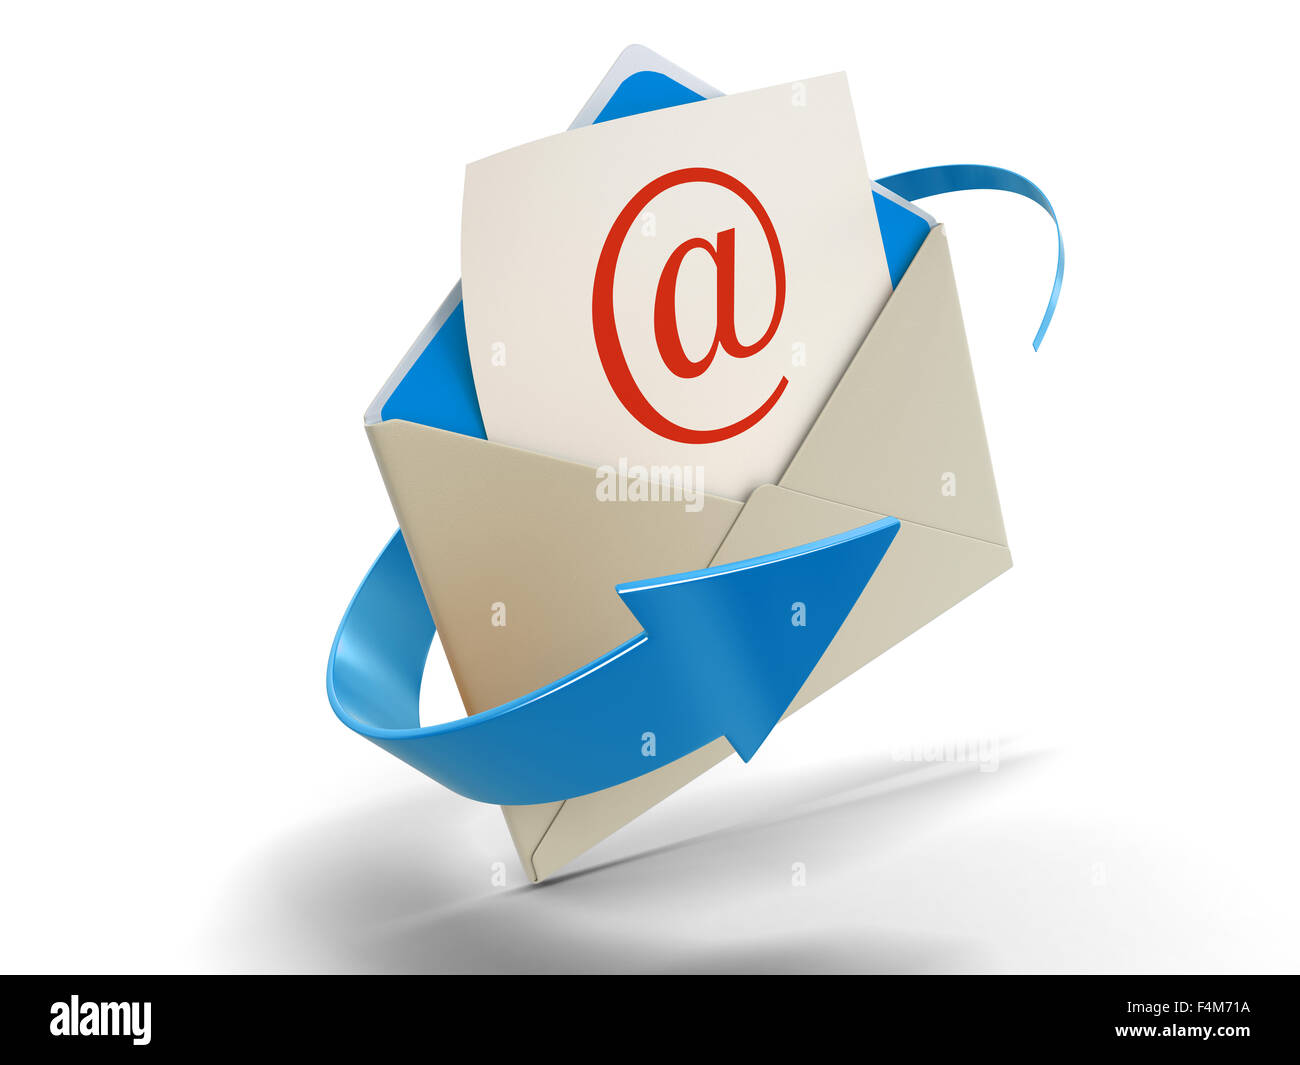 Lettera di E-mail (percorso di clipping incluso) Immagini Stock